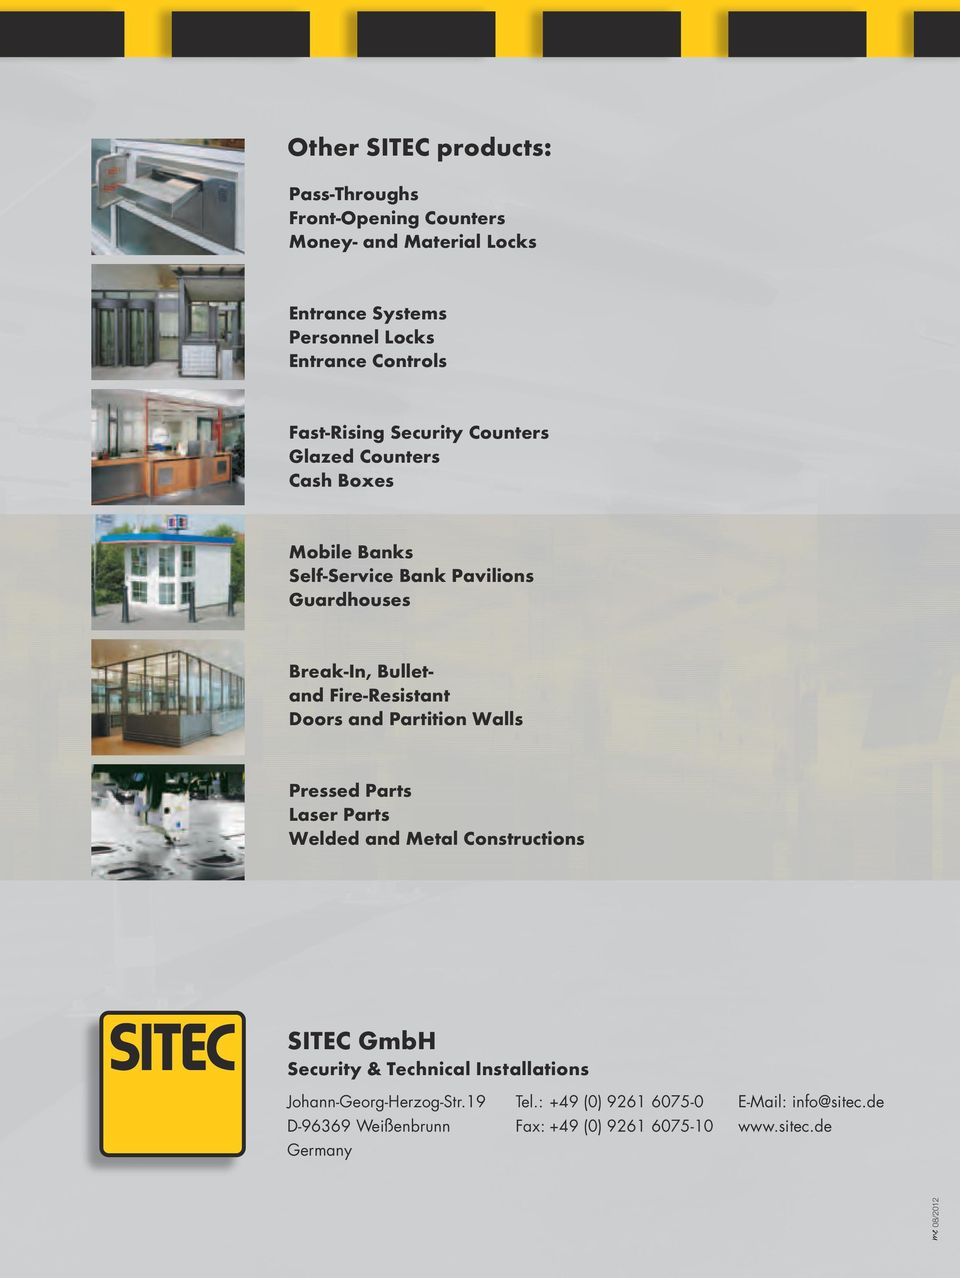 Fire-Resistant Dos and Partition Walls Pressed Parts Laser Parts Welded and Metal Constructions SITEC GmbH Security & Technical